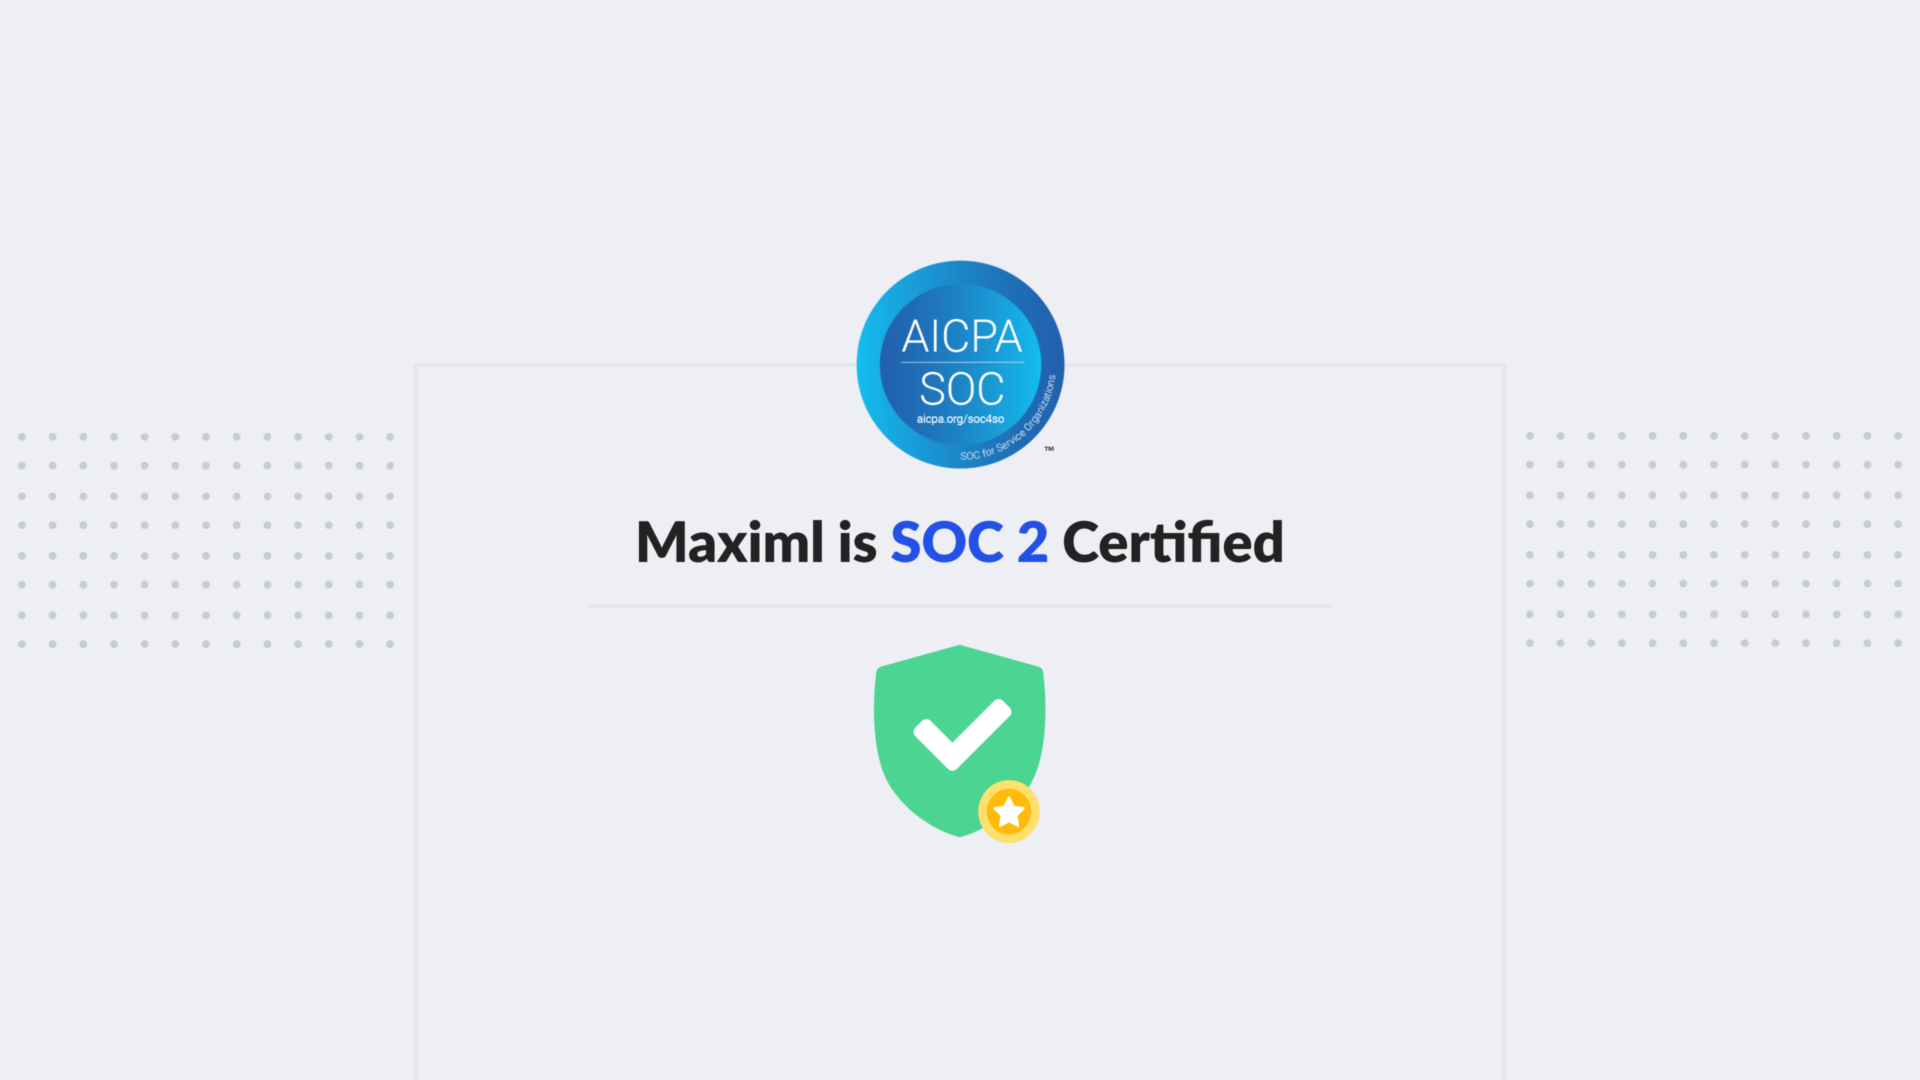 "<a style=""color:black"" href=""/announcement/awards-and-certifications/maximl-becomes-soc-2-certified/"">Maximl becomes SOC 2 certified.</a>"